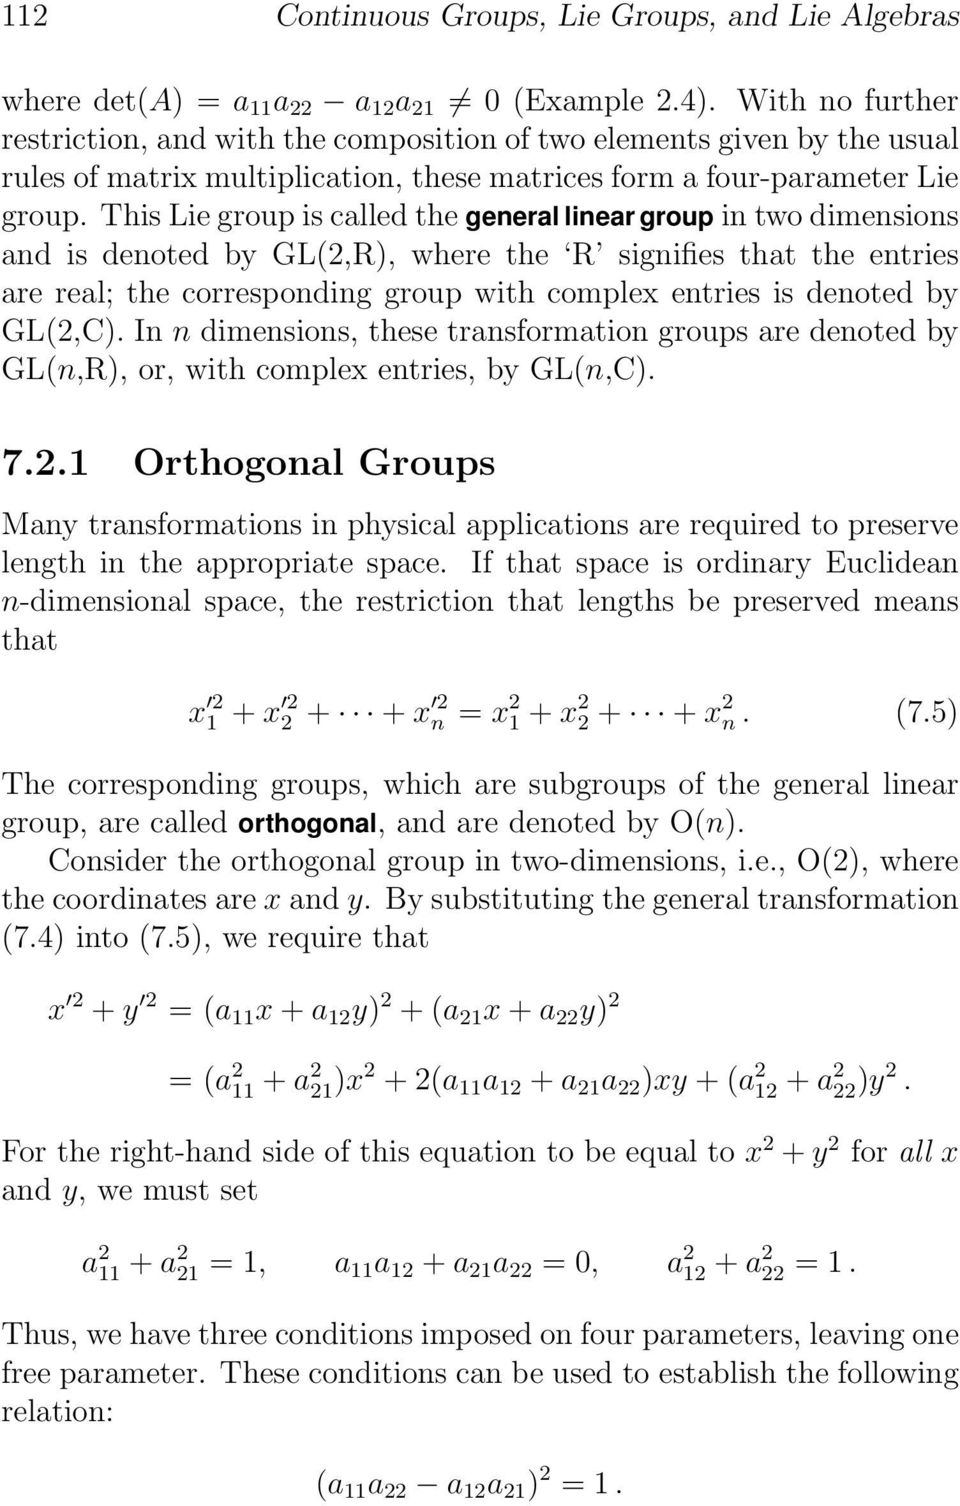 This Lie group is called the general linear group in two dimensions and is denoted by GL(2,R), where the R signifies that the entries are real; the corresponding group with complex entries is denoted